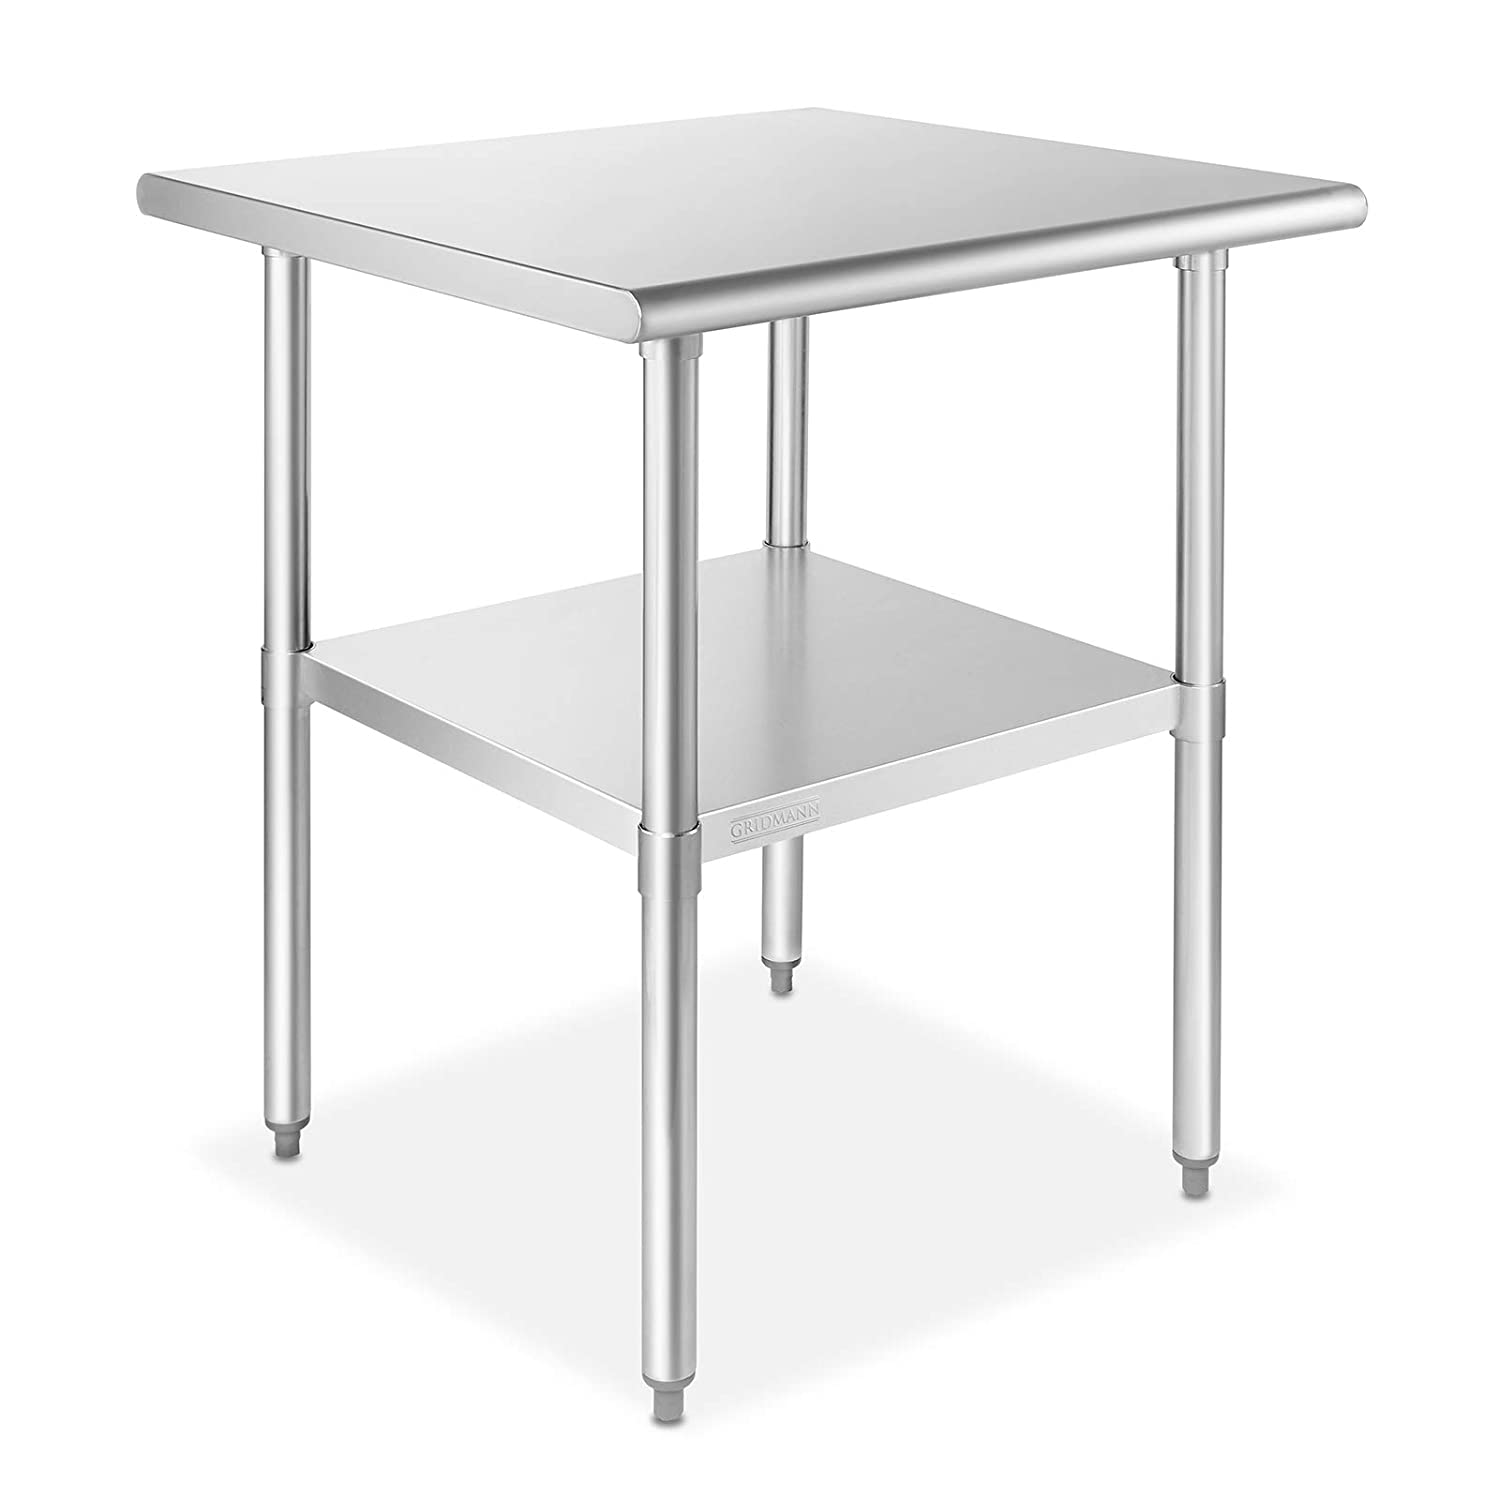 GRIDMANN 24 in. x 24 in. NSF Stainless Steel Commercial Kitchen Prep & Work Table